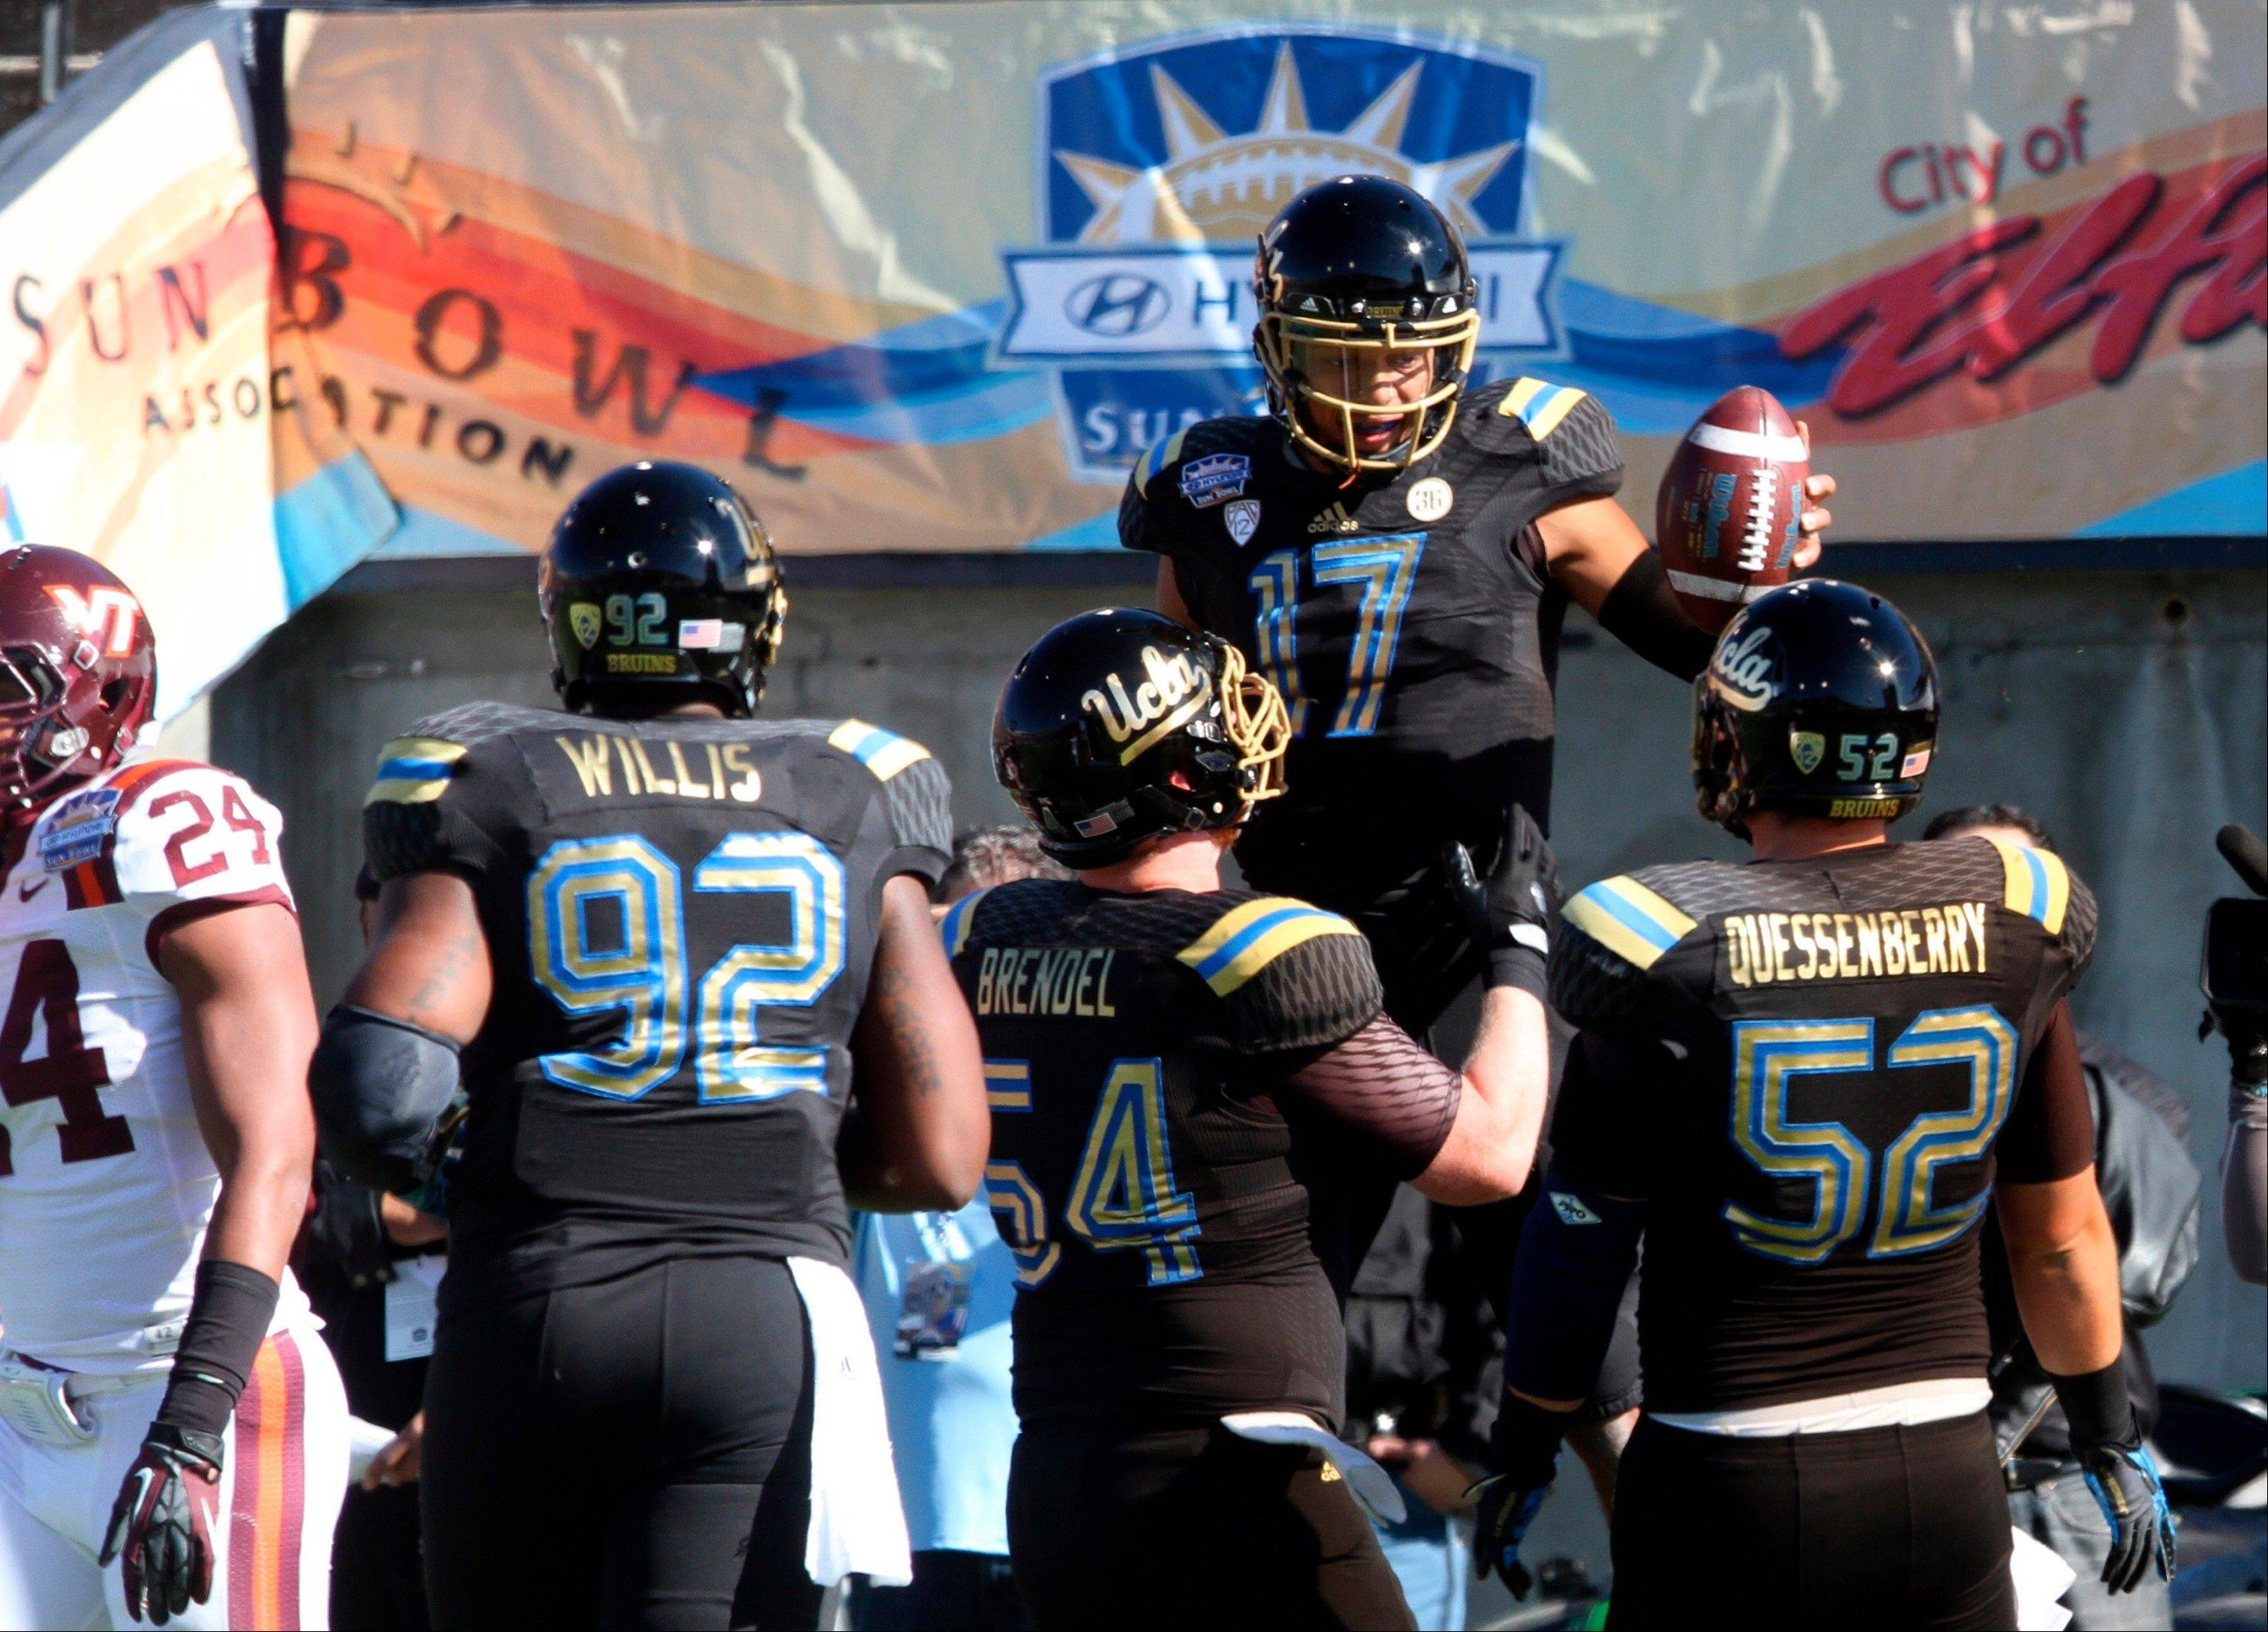 UCLA routs Virginia Tech in Sun Bowl